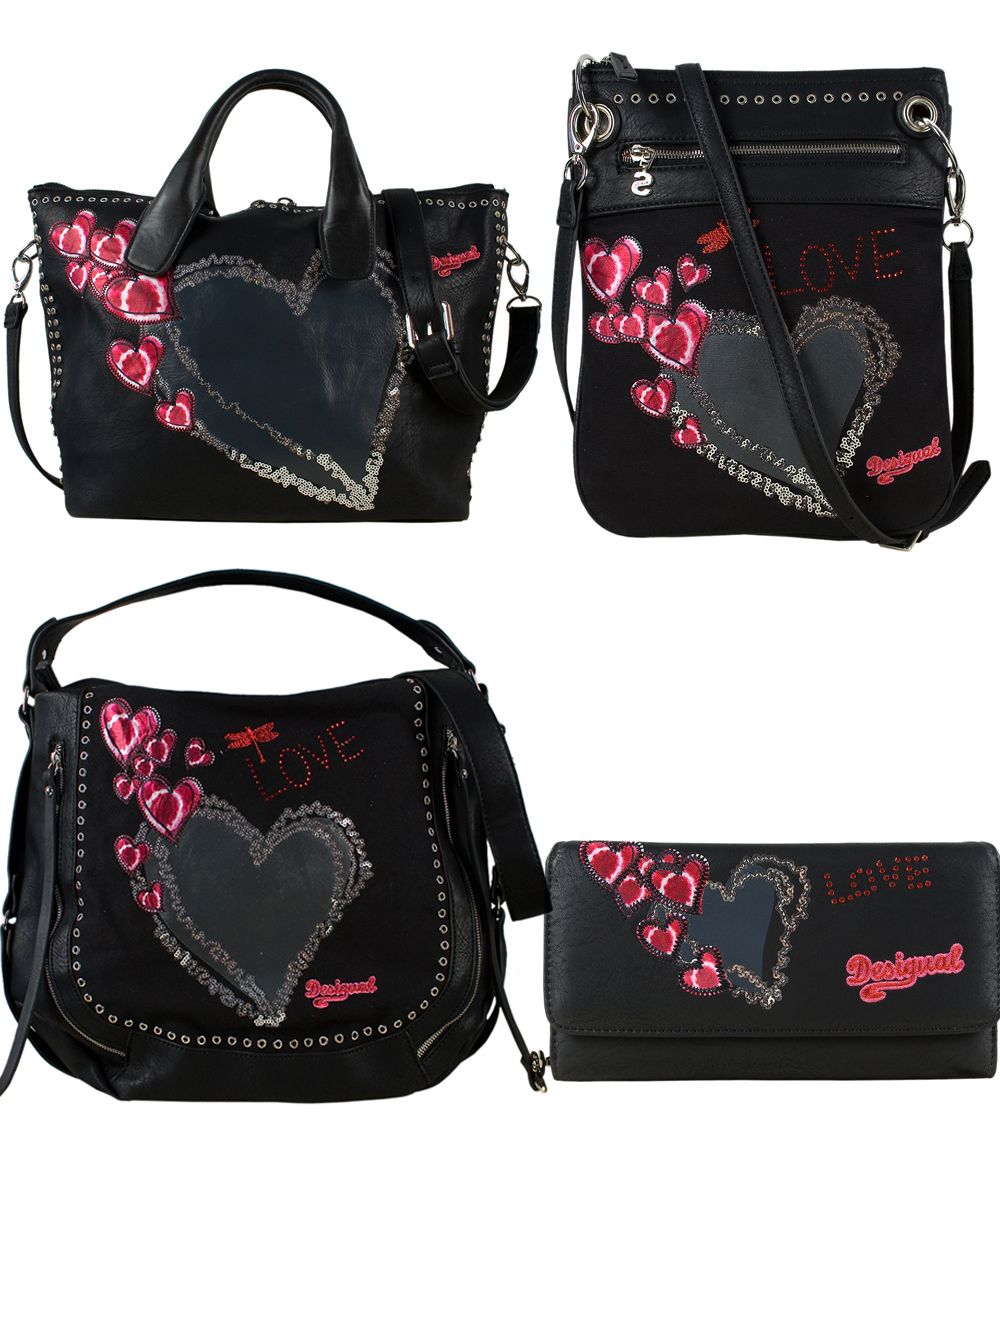 sac a main desigual clutch sac london sac bandouli re coeur de punk. Black Bedroom Furniture Sets. Home Design Ideas